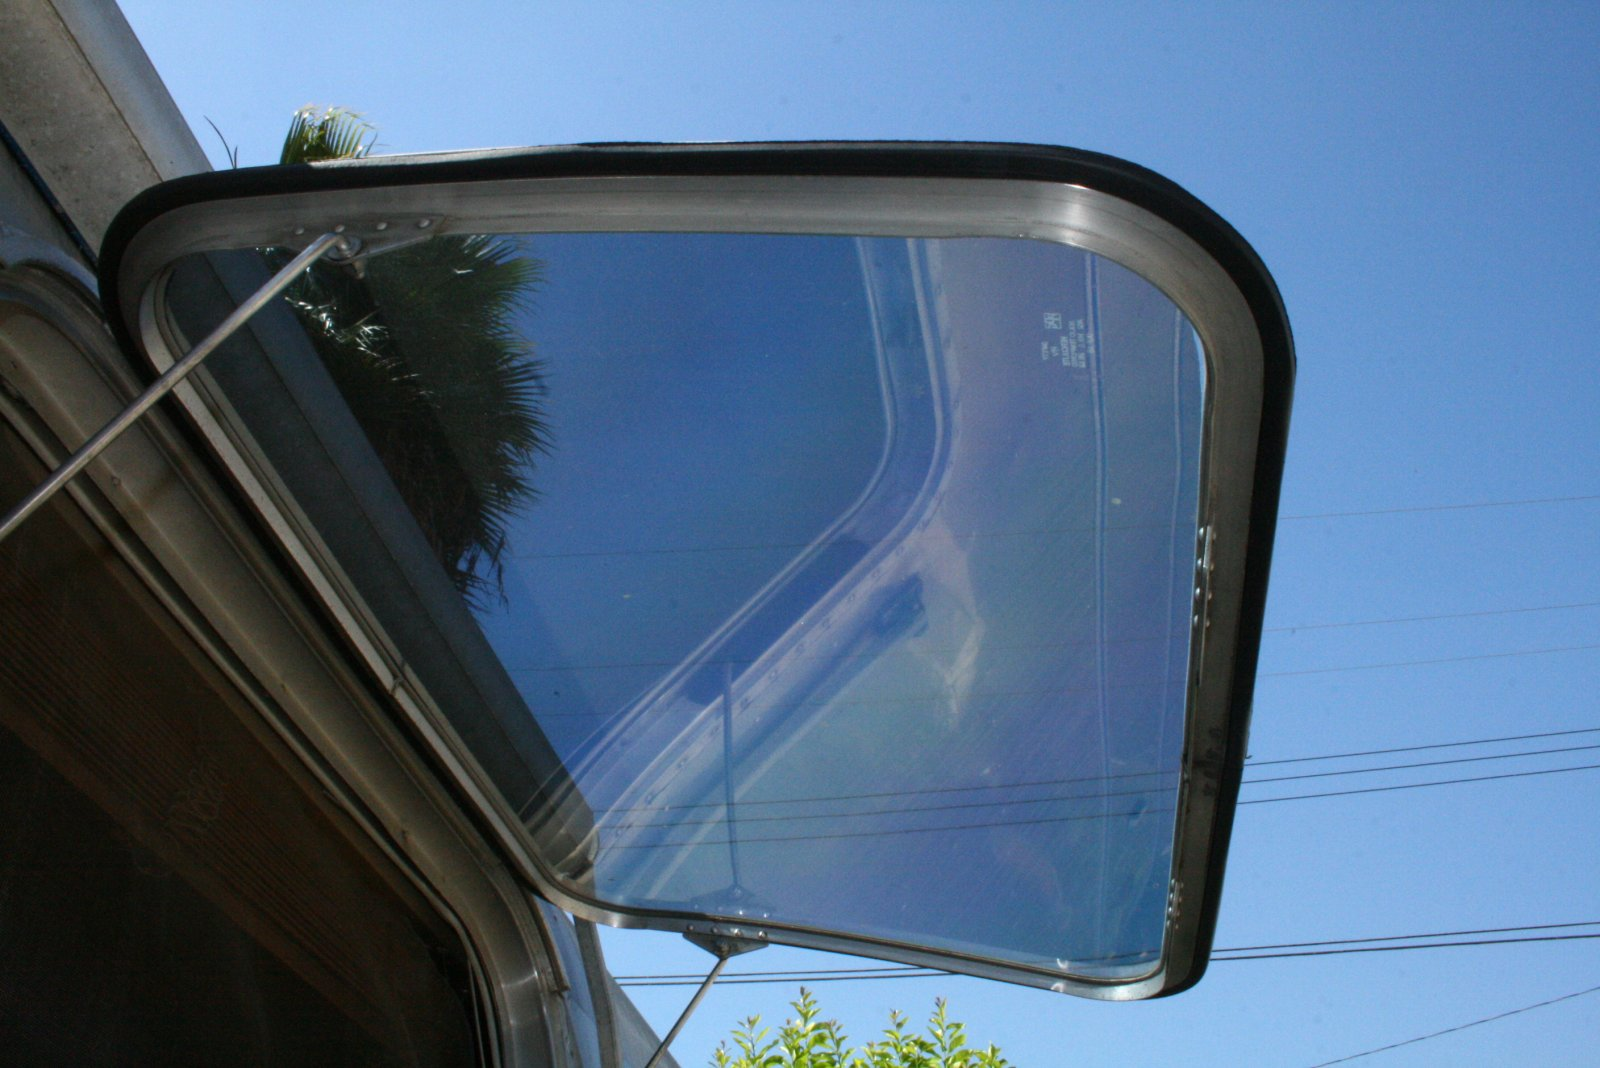 Click image for larger version  Name:new window seals & tint.jpg Views:262 Size:212.3 KB ID:81559